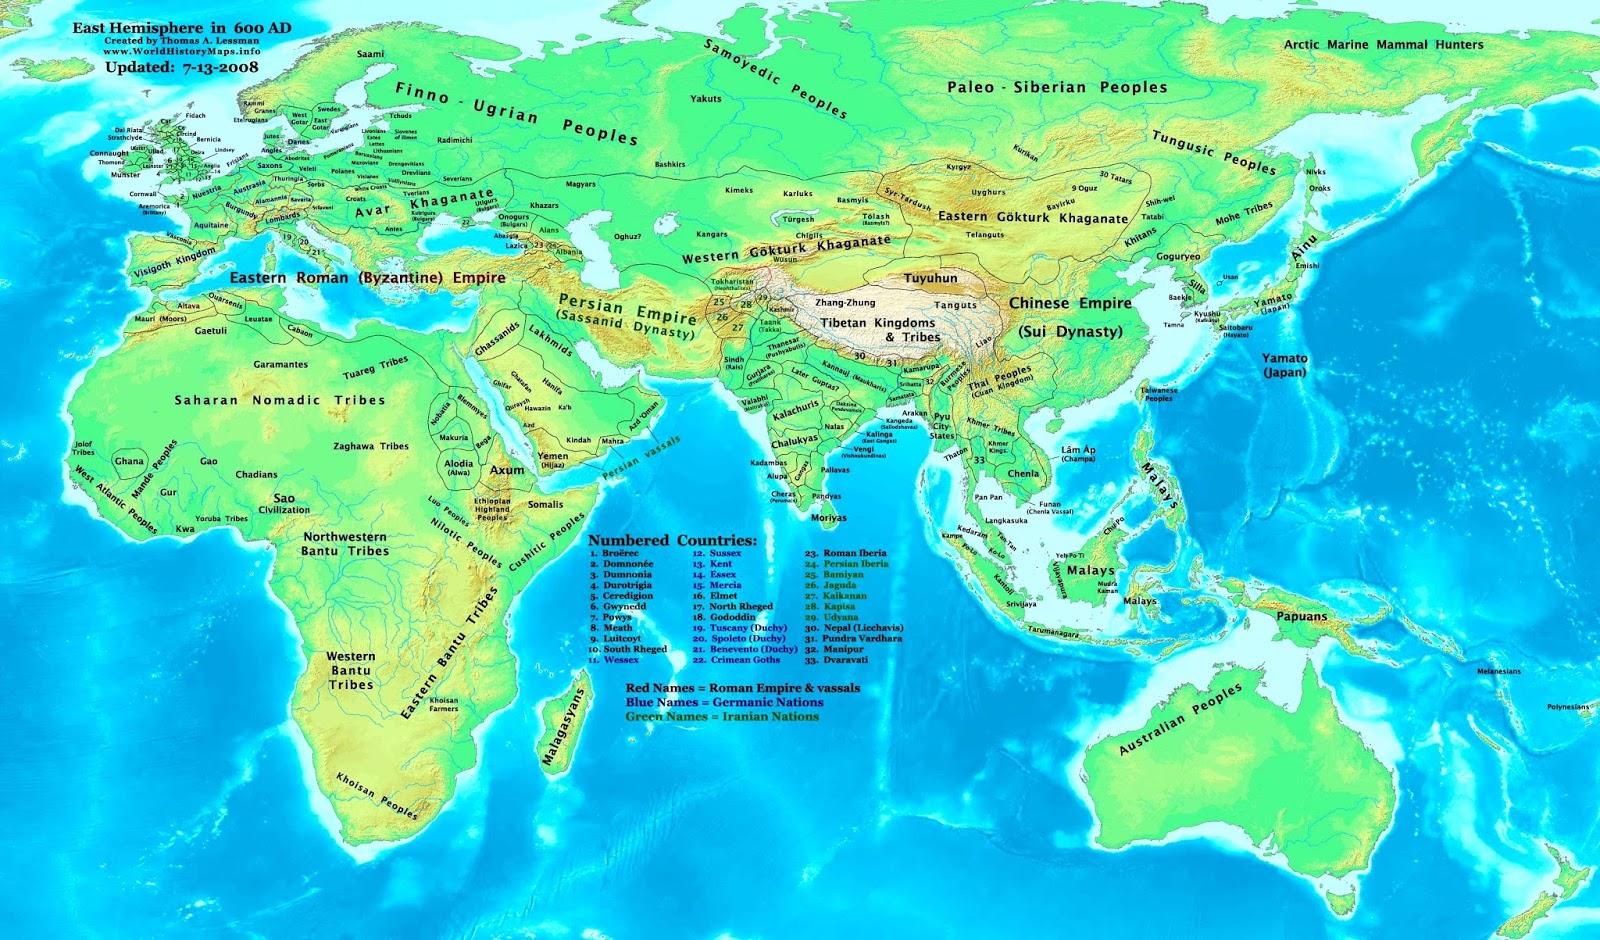 new world maritime empires cultural diffusion